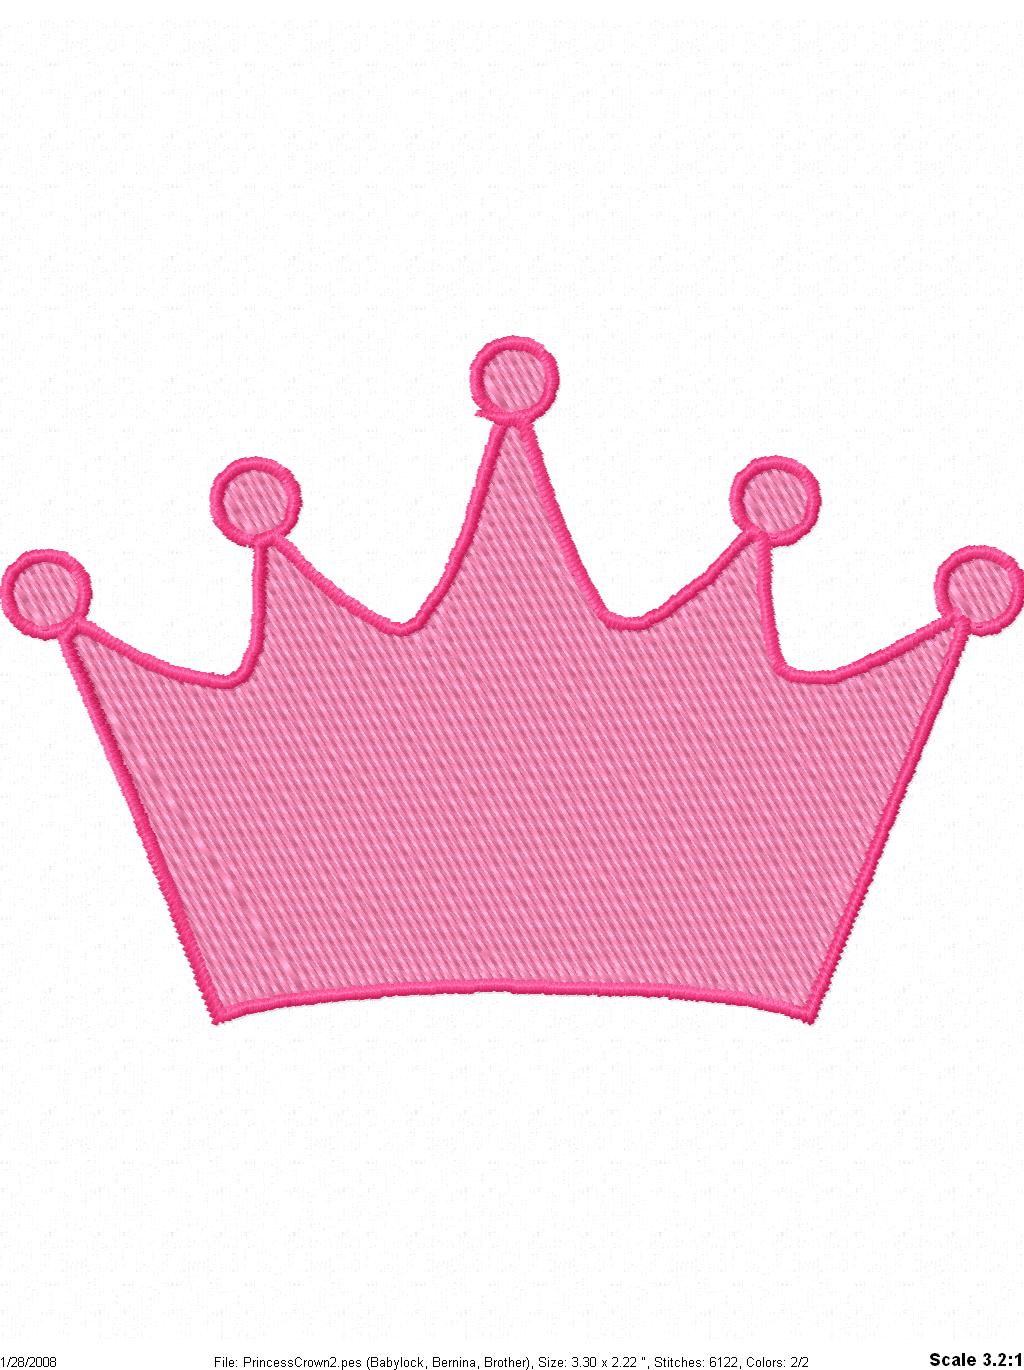 Free Queen Crown Cliparts, Download Free Clip Art, Free Clip Art on.